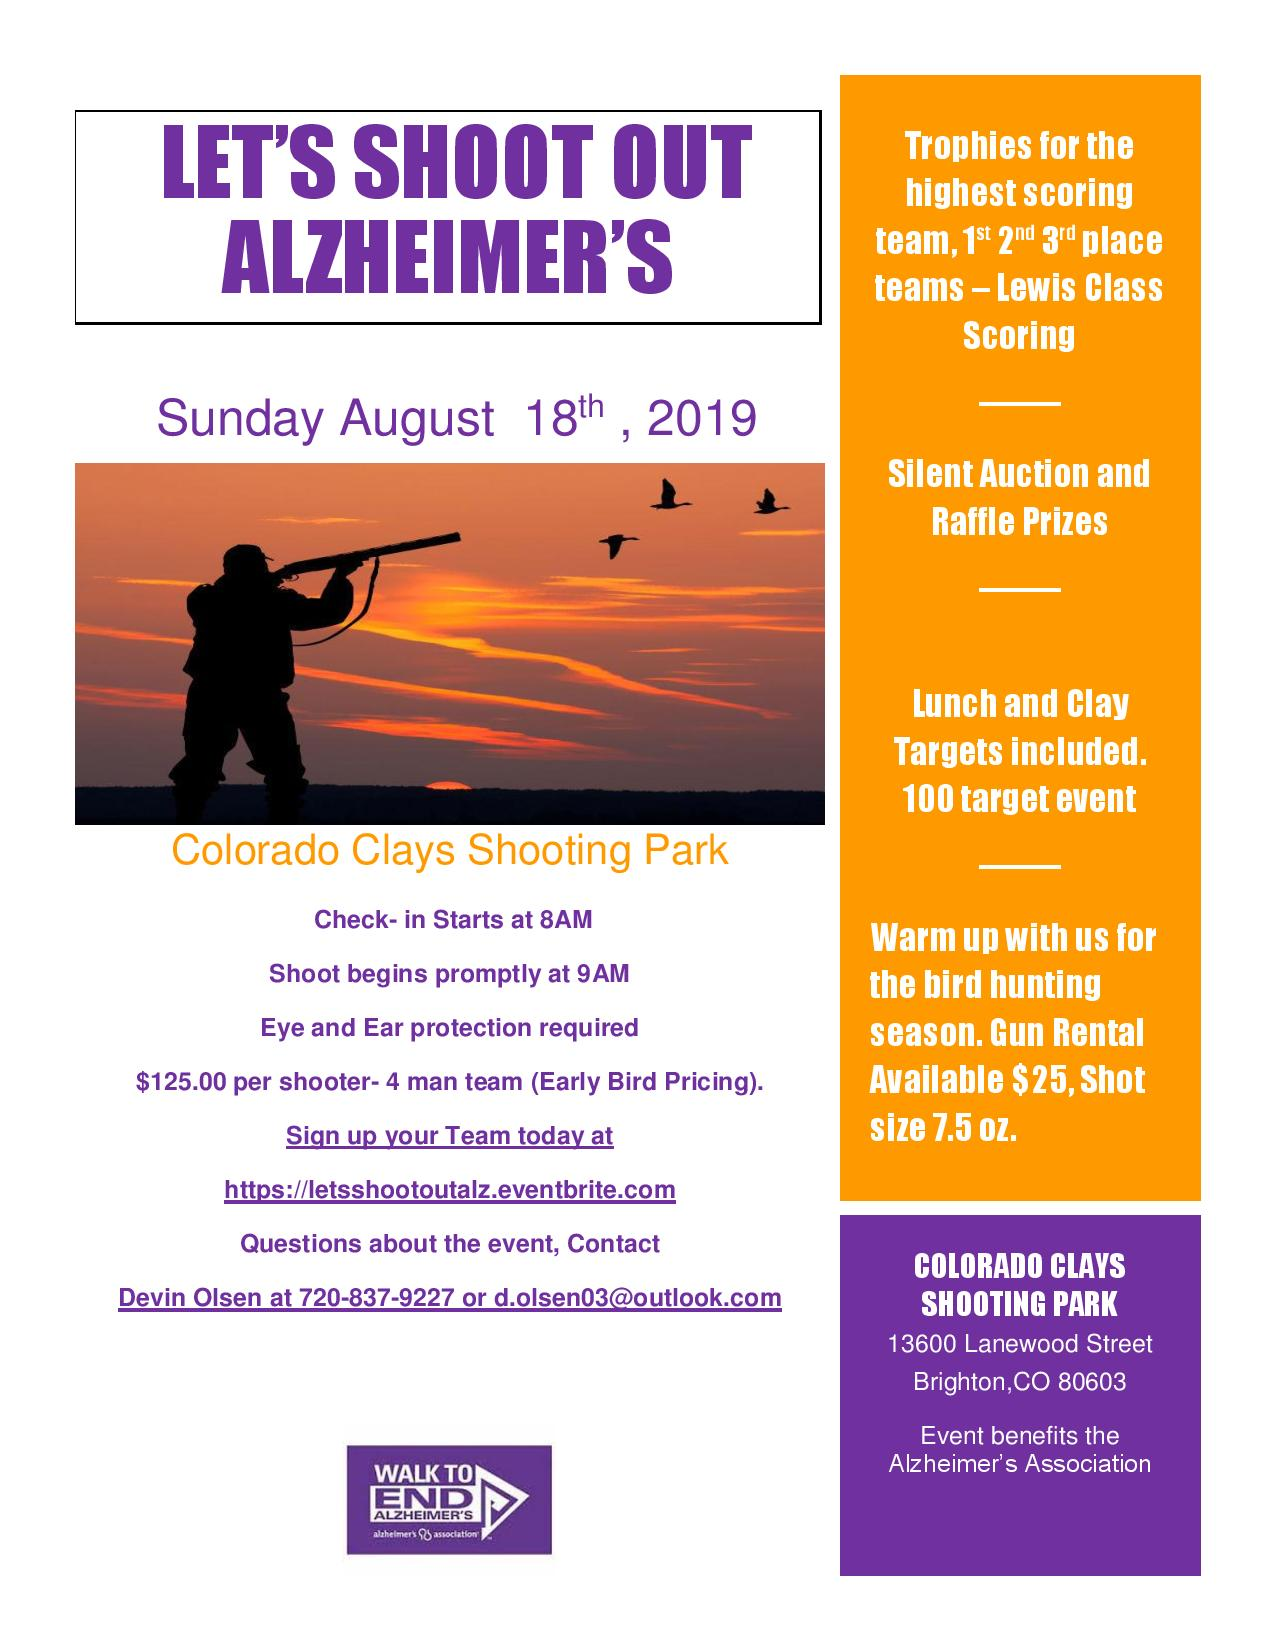 Let's Shoot Out Alzheimer's